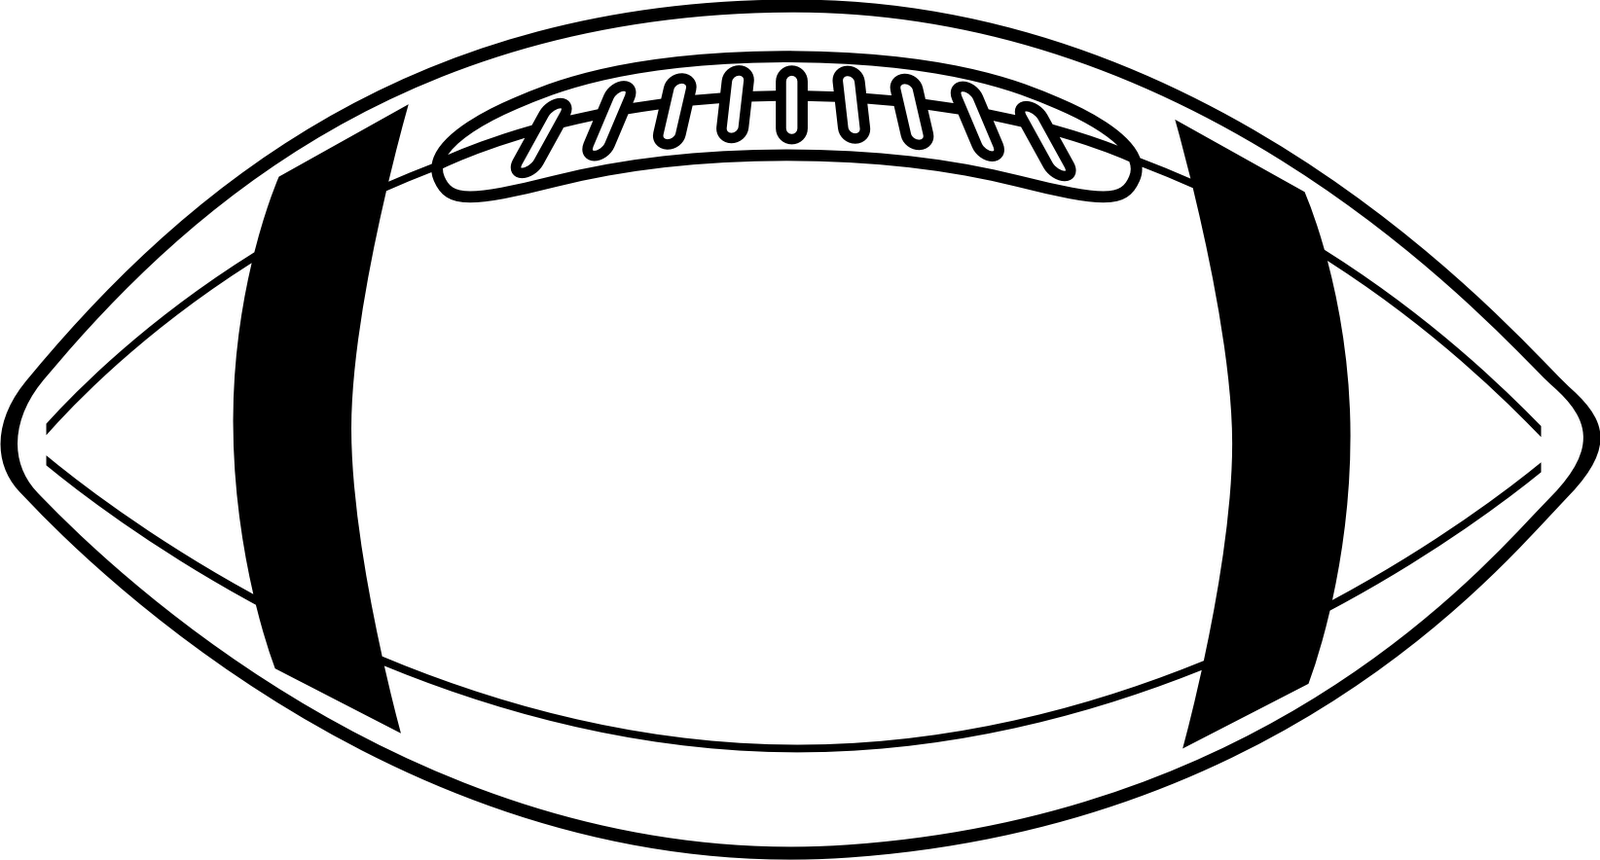 Free football outline.